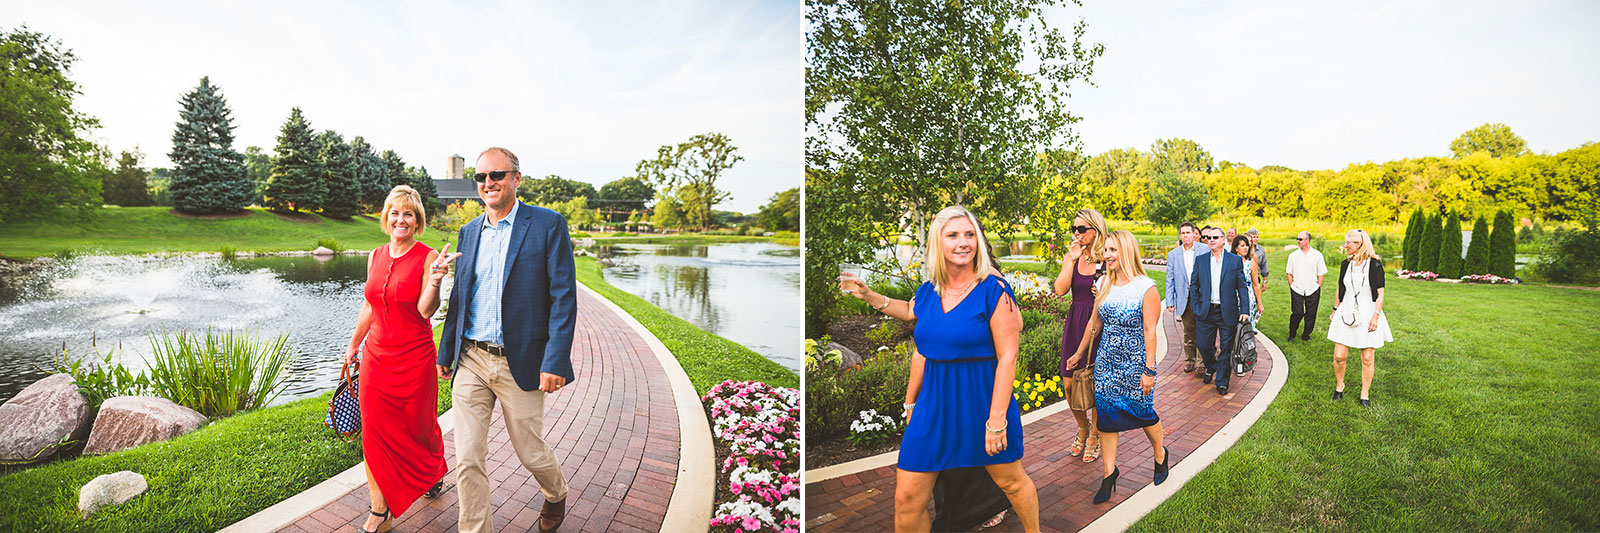 17 guests - Karen + Scott // Fishermens Inn Wedding Photographer Elburn Illinois